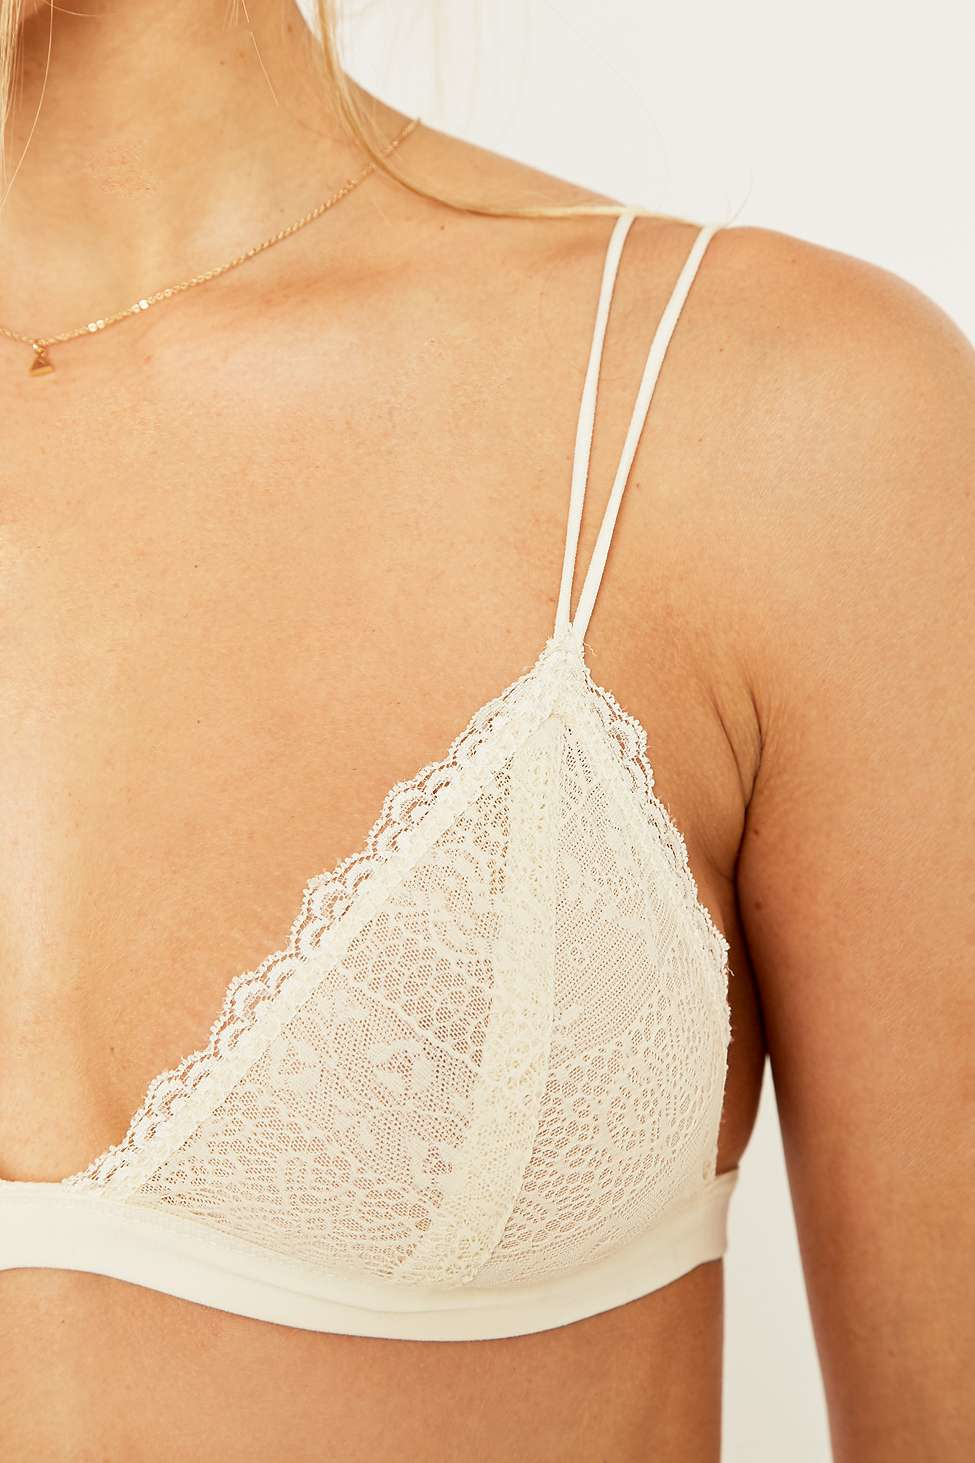 f471ca6b3d Urban Outfitters Ivory Linear Bralette in White - Lyst